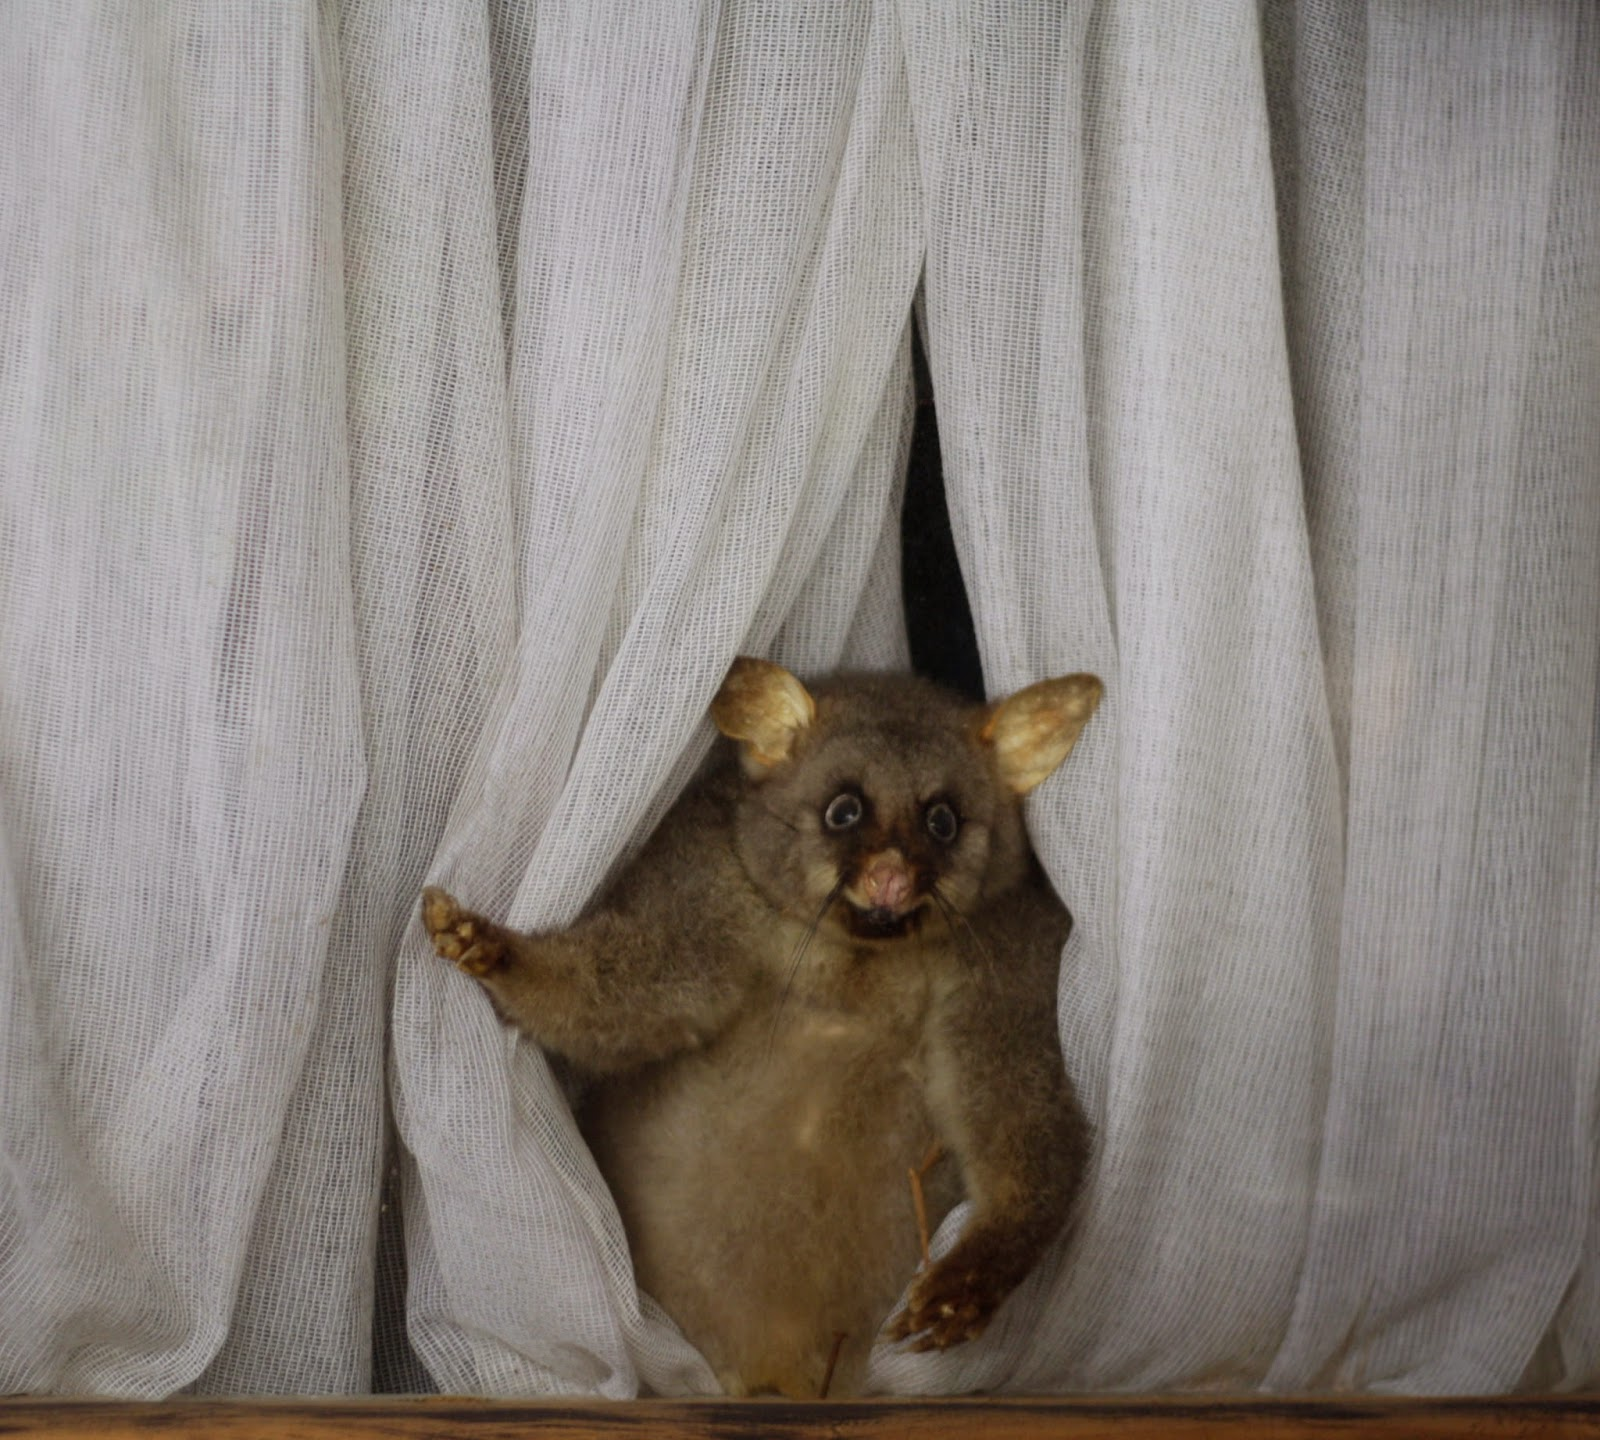 A taxidermy possum peeks out from behind a net curtain.